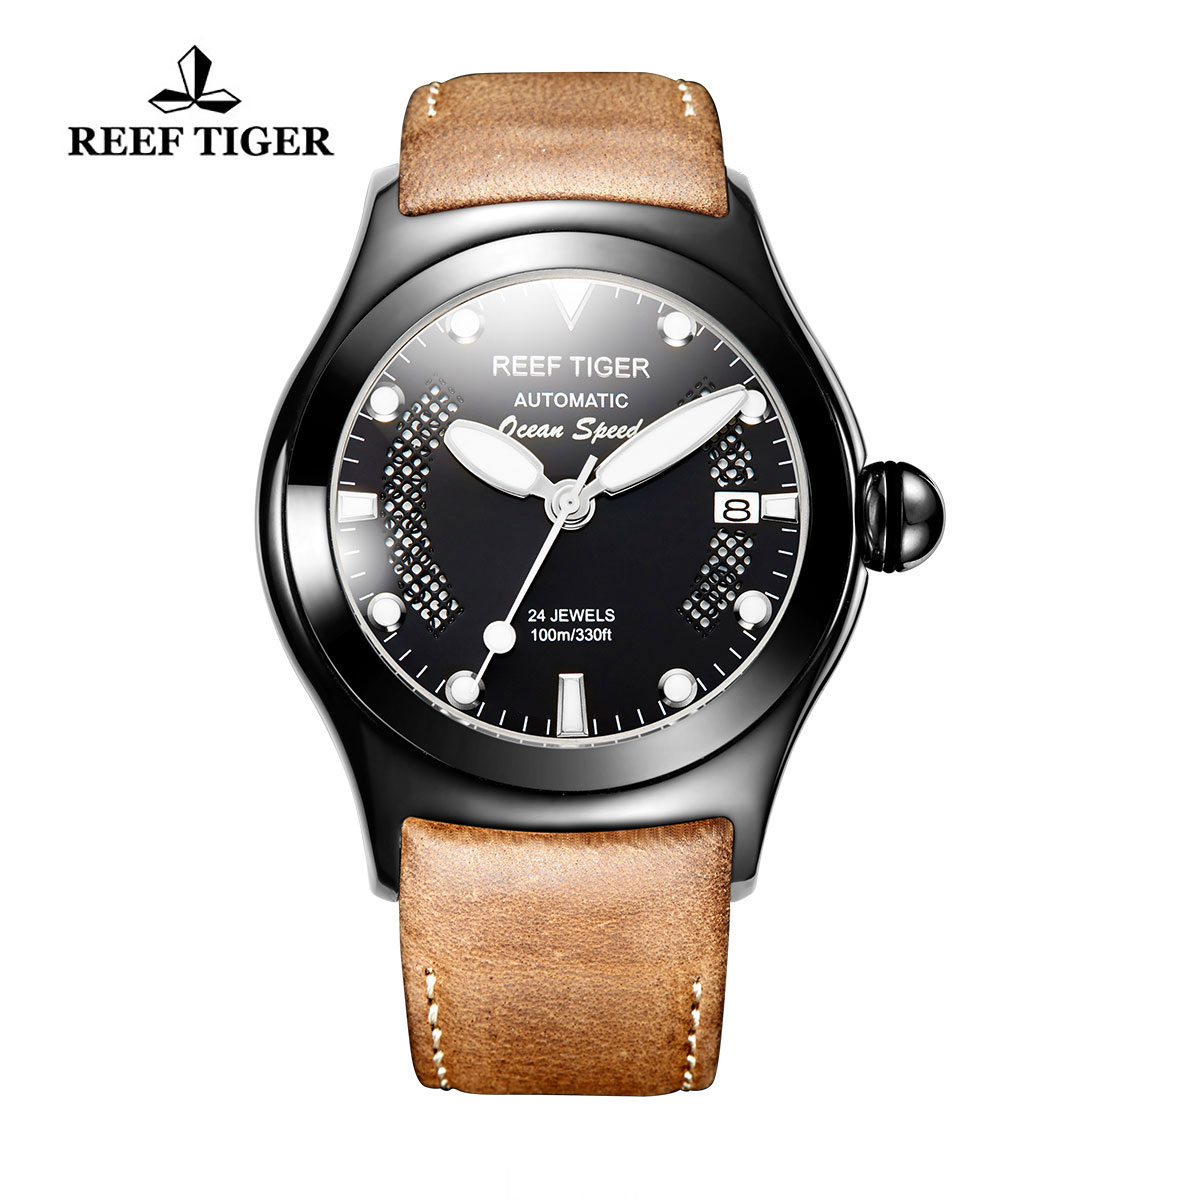 Reef Tiger Ocean Speed Sport Watches Automatic PVD Case Brown Leather Black Dial Watch RGA704-BBBW